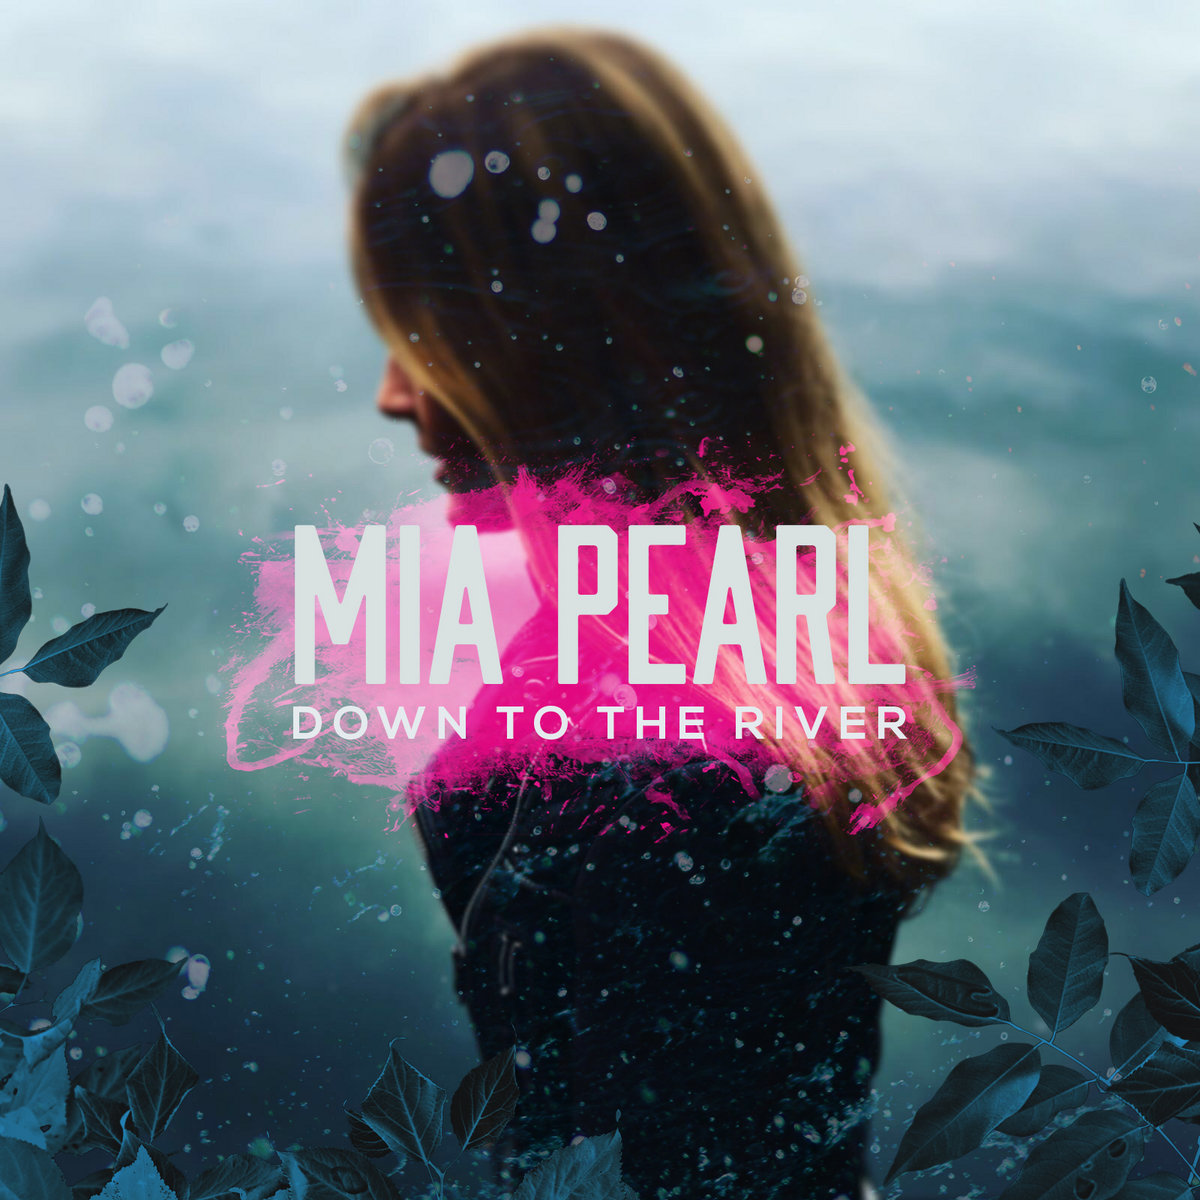 Down to the River by Mia Pearl